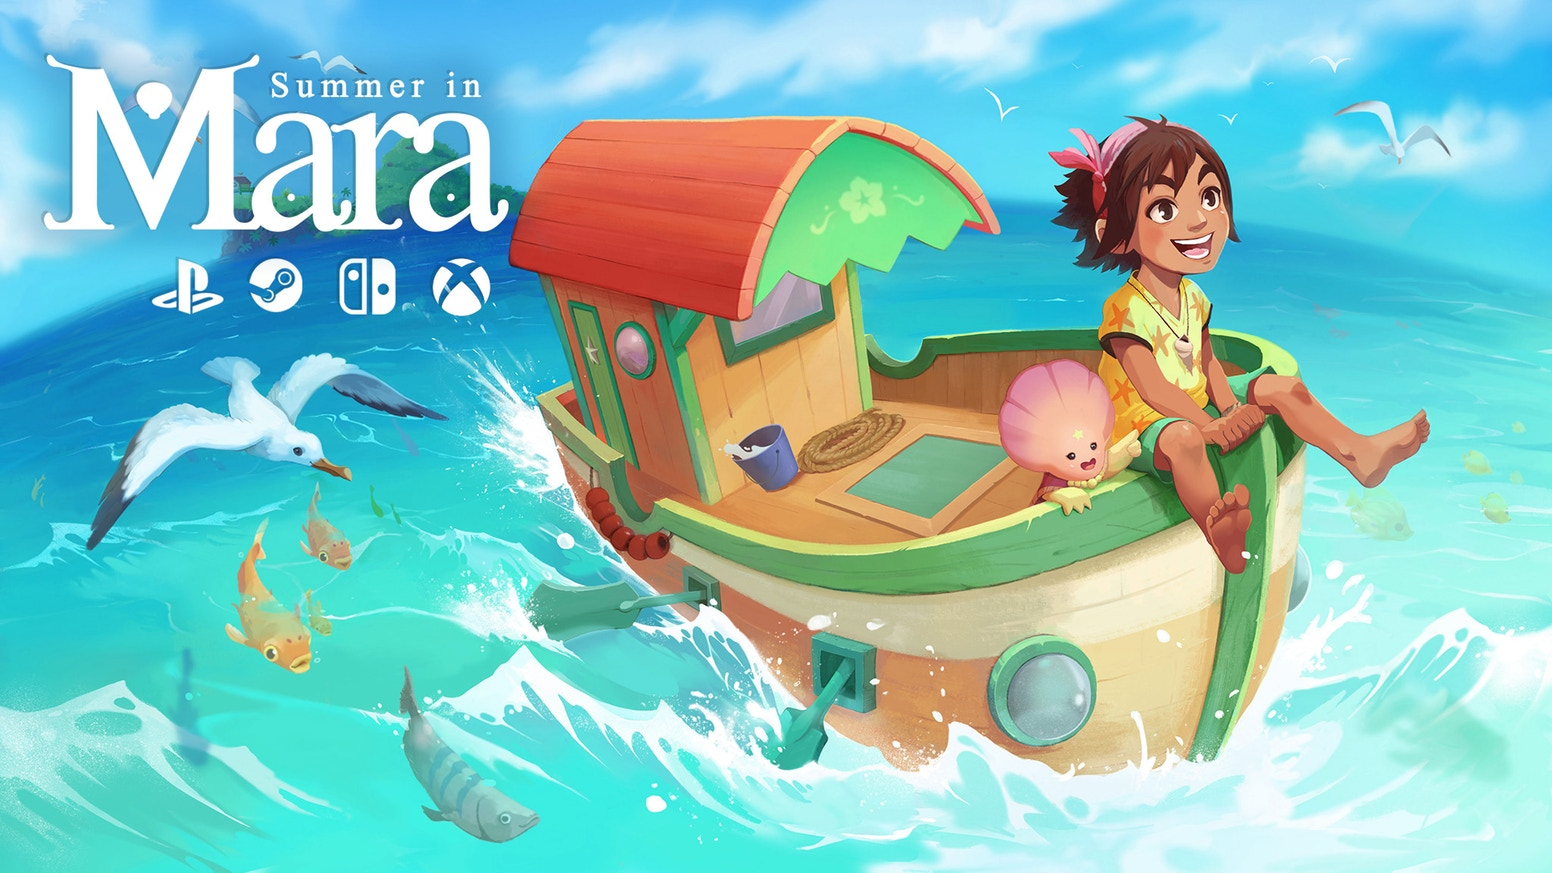 Summer in Mara, a la venta el 16 de junio en Switch y Steam